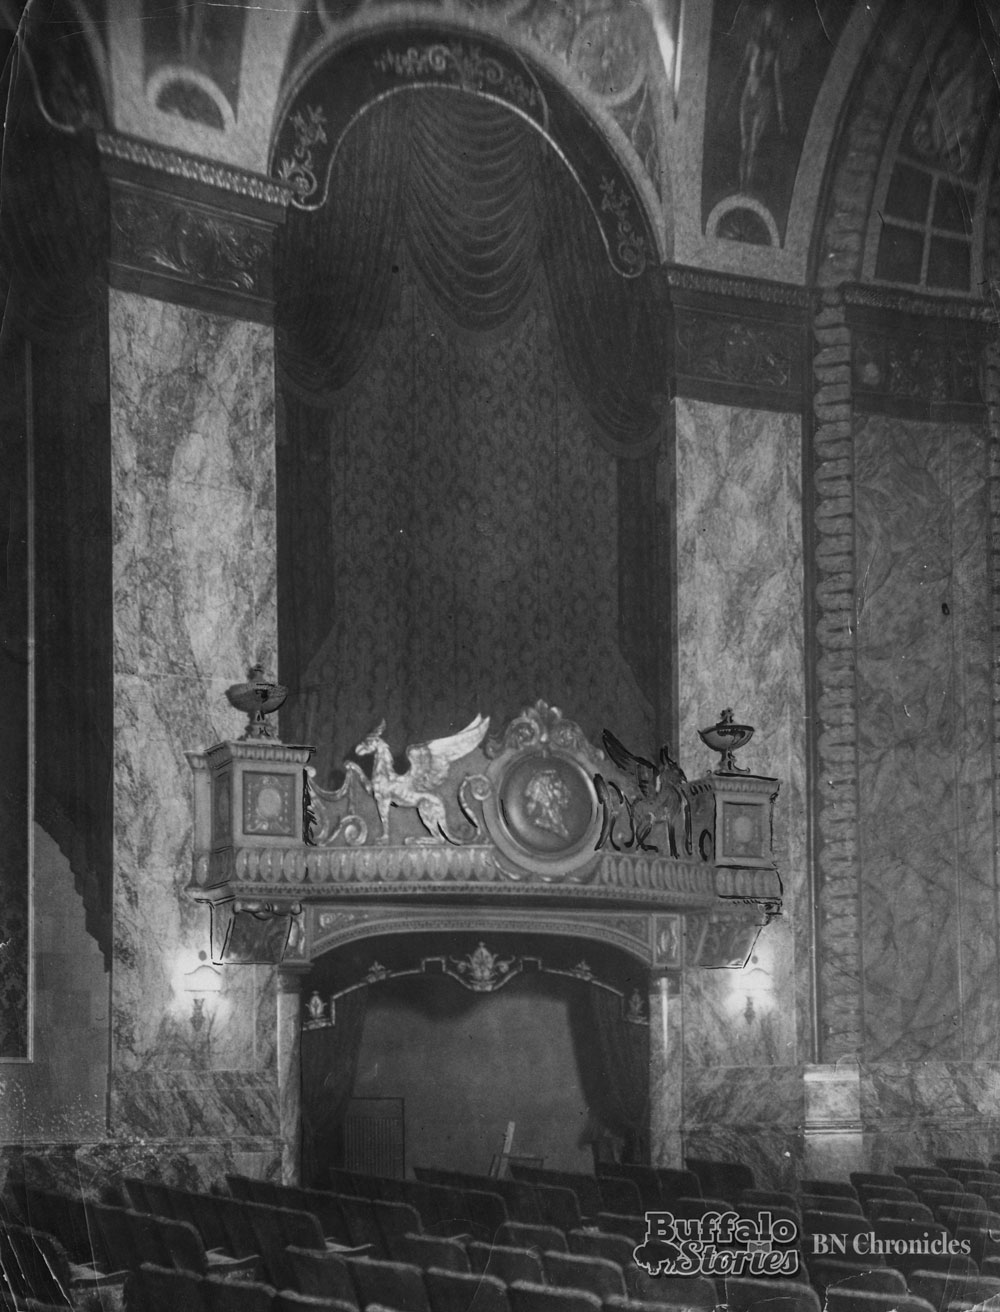 Inside the Sheas Seneca just before opening night, 1930. Buffalo News archives